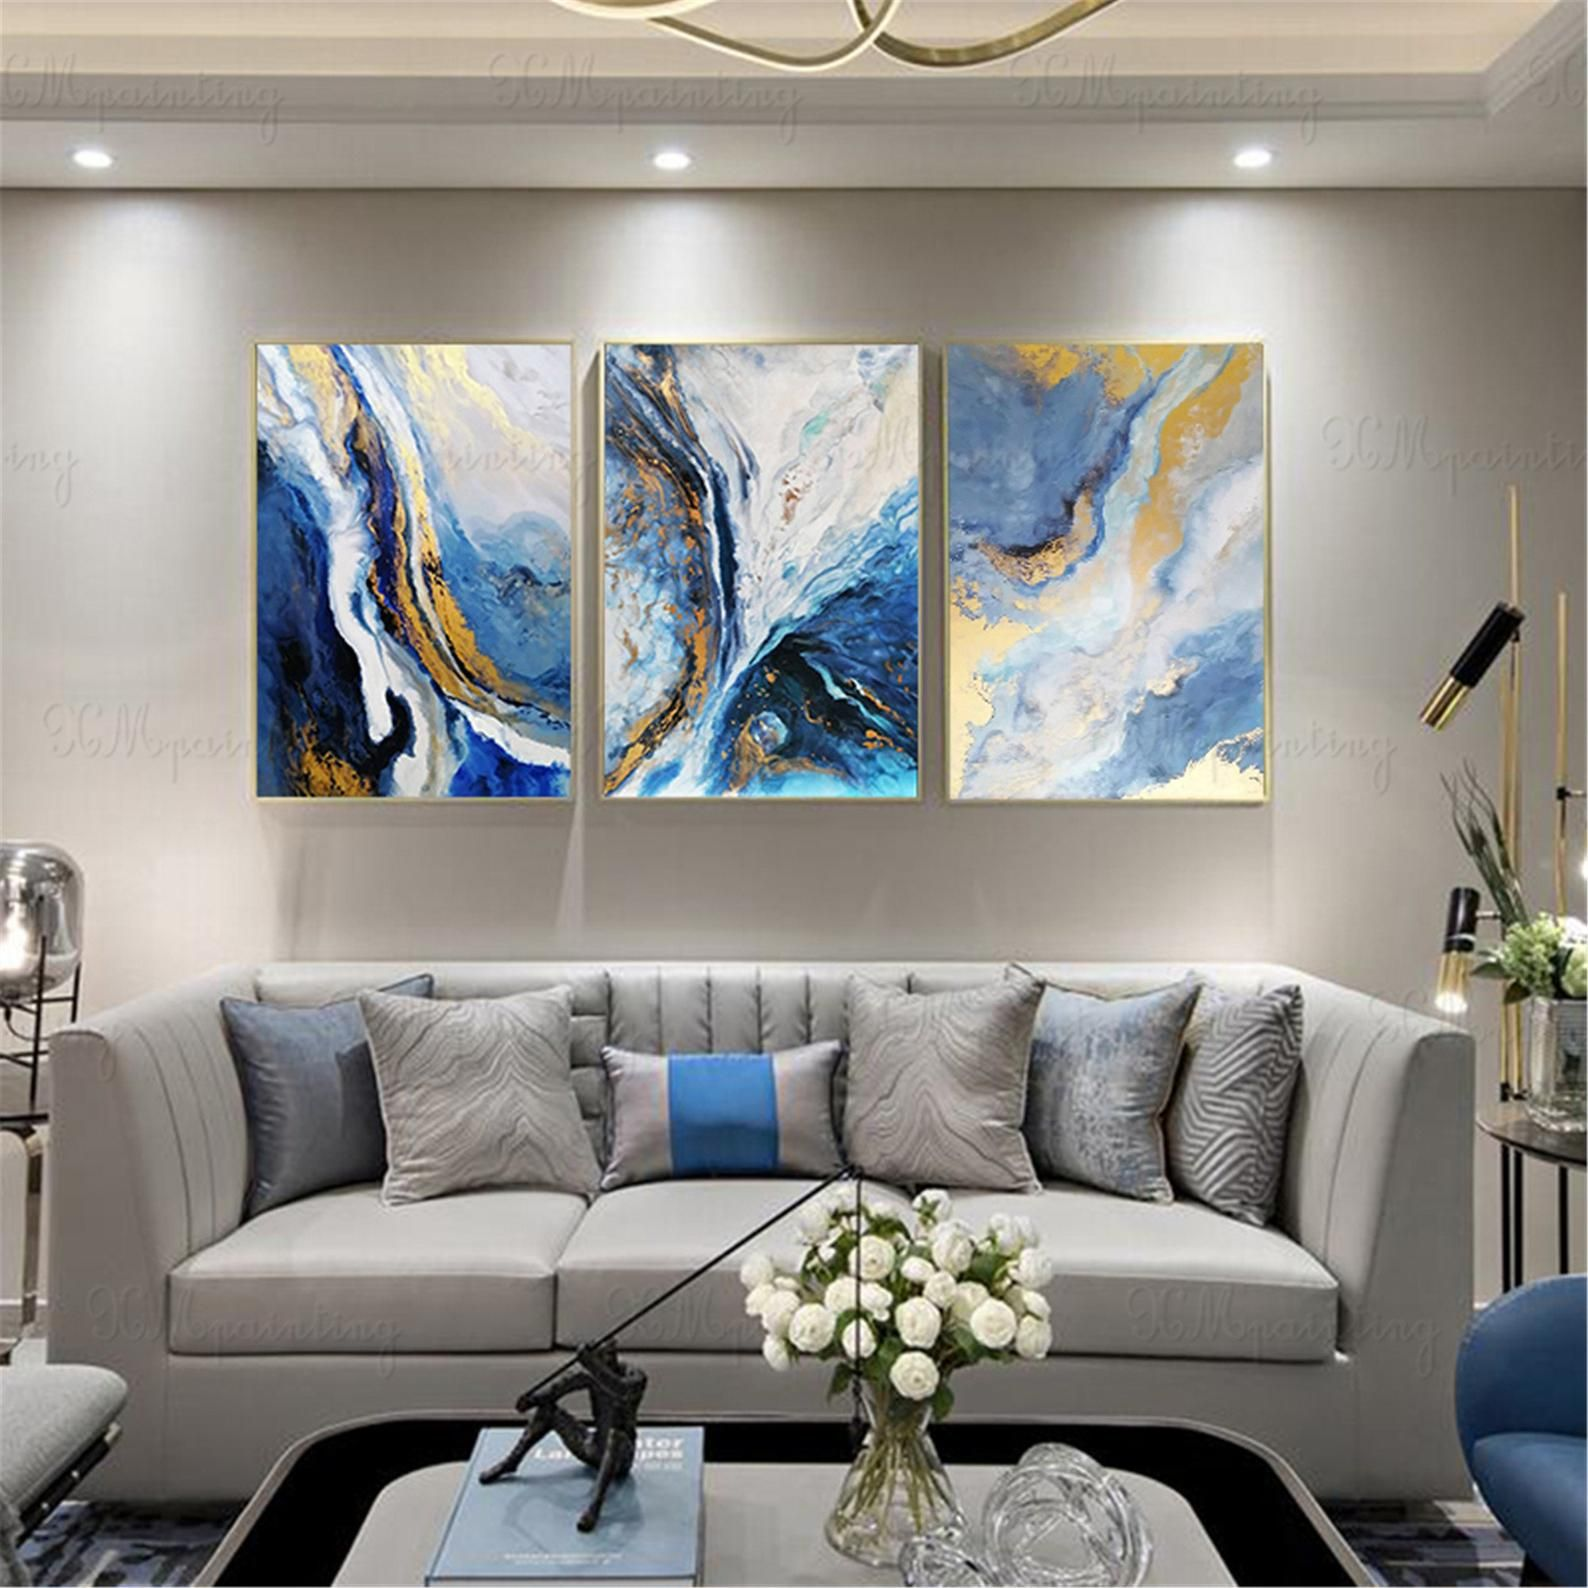 Framed 3 Panels Acrylic Canvas Abstract Painting Wall Art Picture For Living Room Bedroom Wall Decor Handmade Gold Art Blue Water Landscape Wall Decor Bedroom Wall Decor Living Room Living Room Pictures